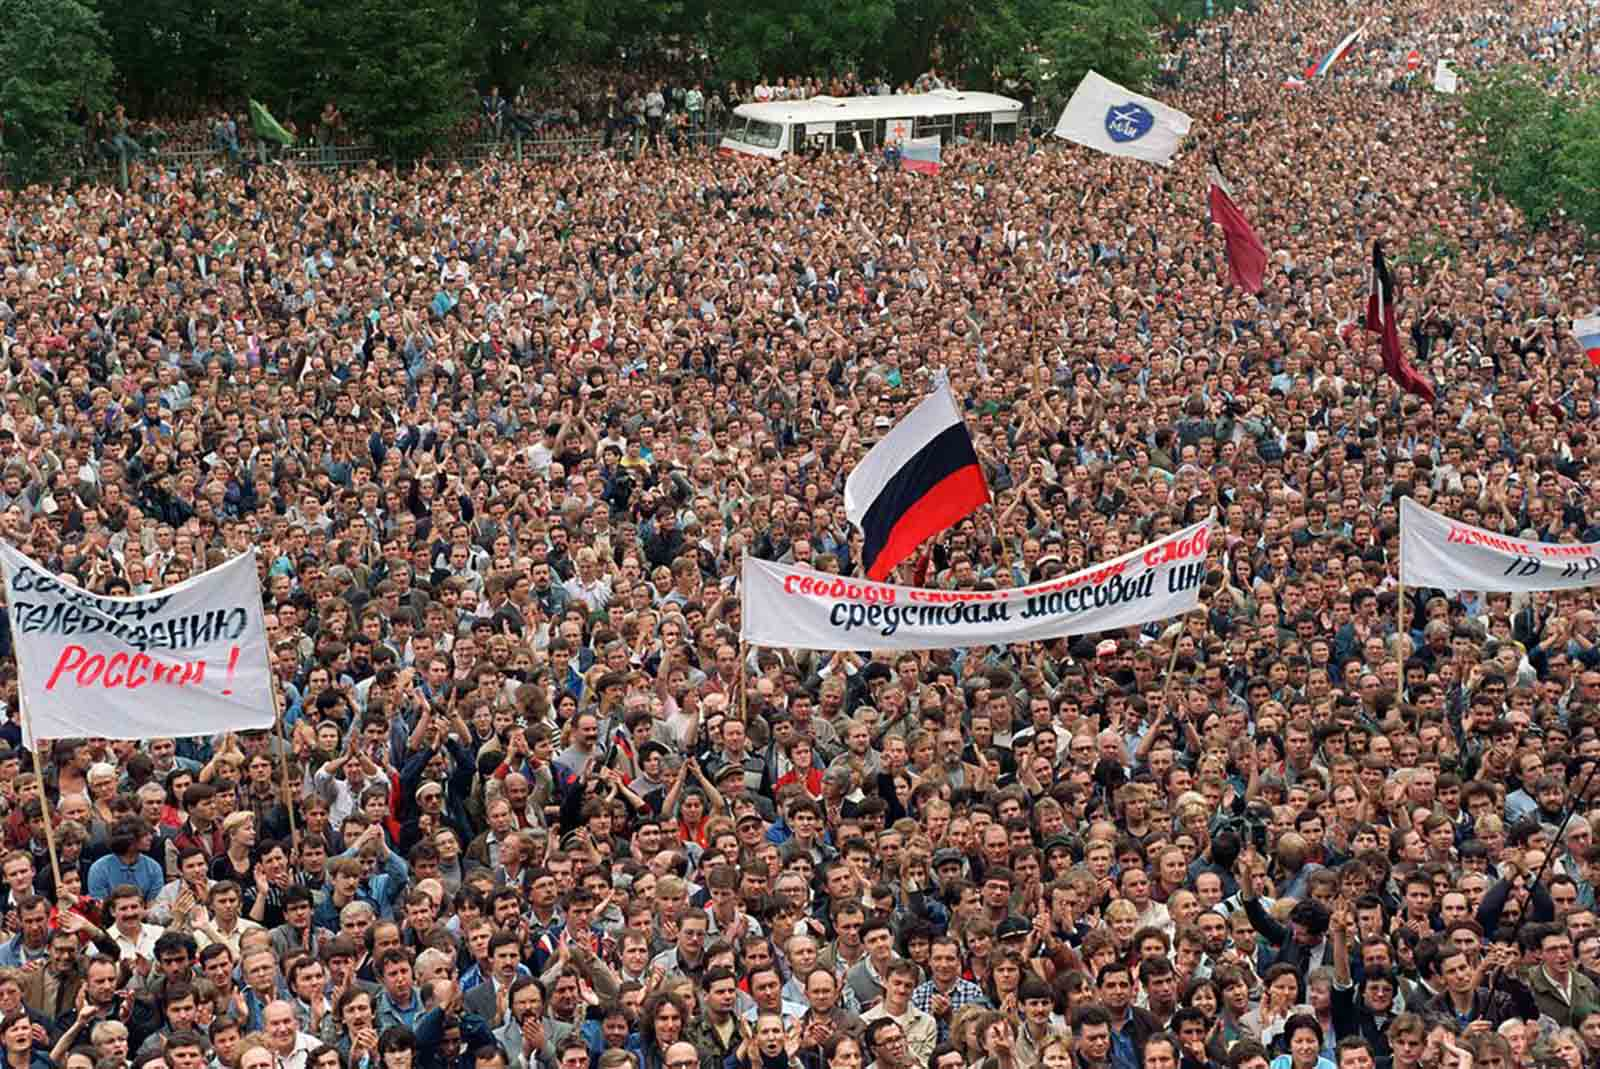 Over 50,000 people ignore a declared state of emergency and gather in front of the Russian parliament building in order to support Boris Yeltsin, on August 20, 1991.